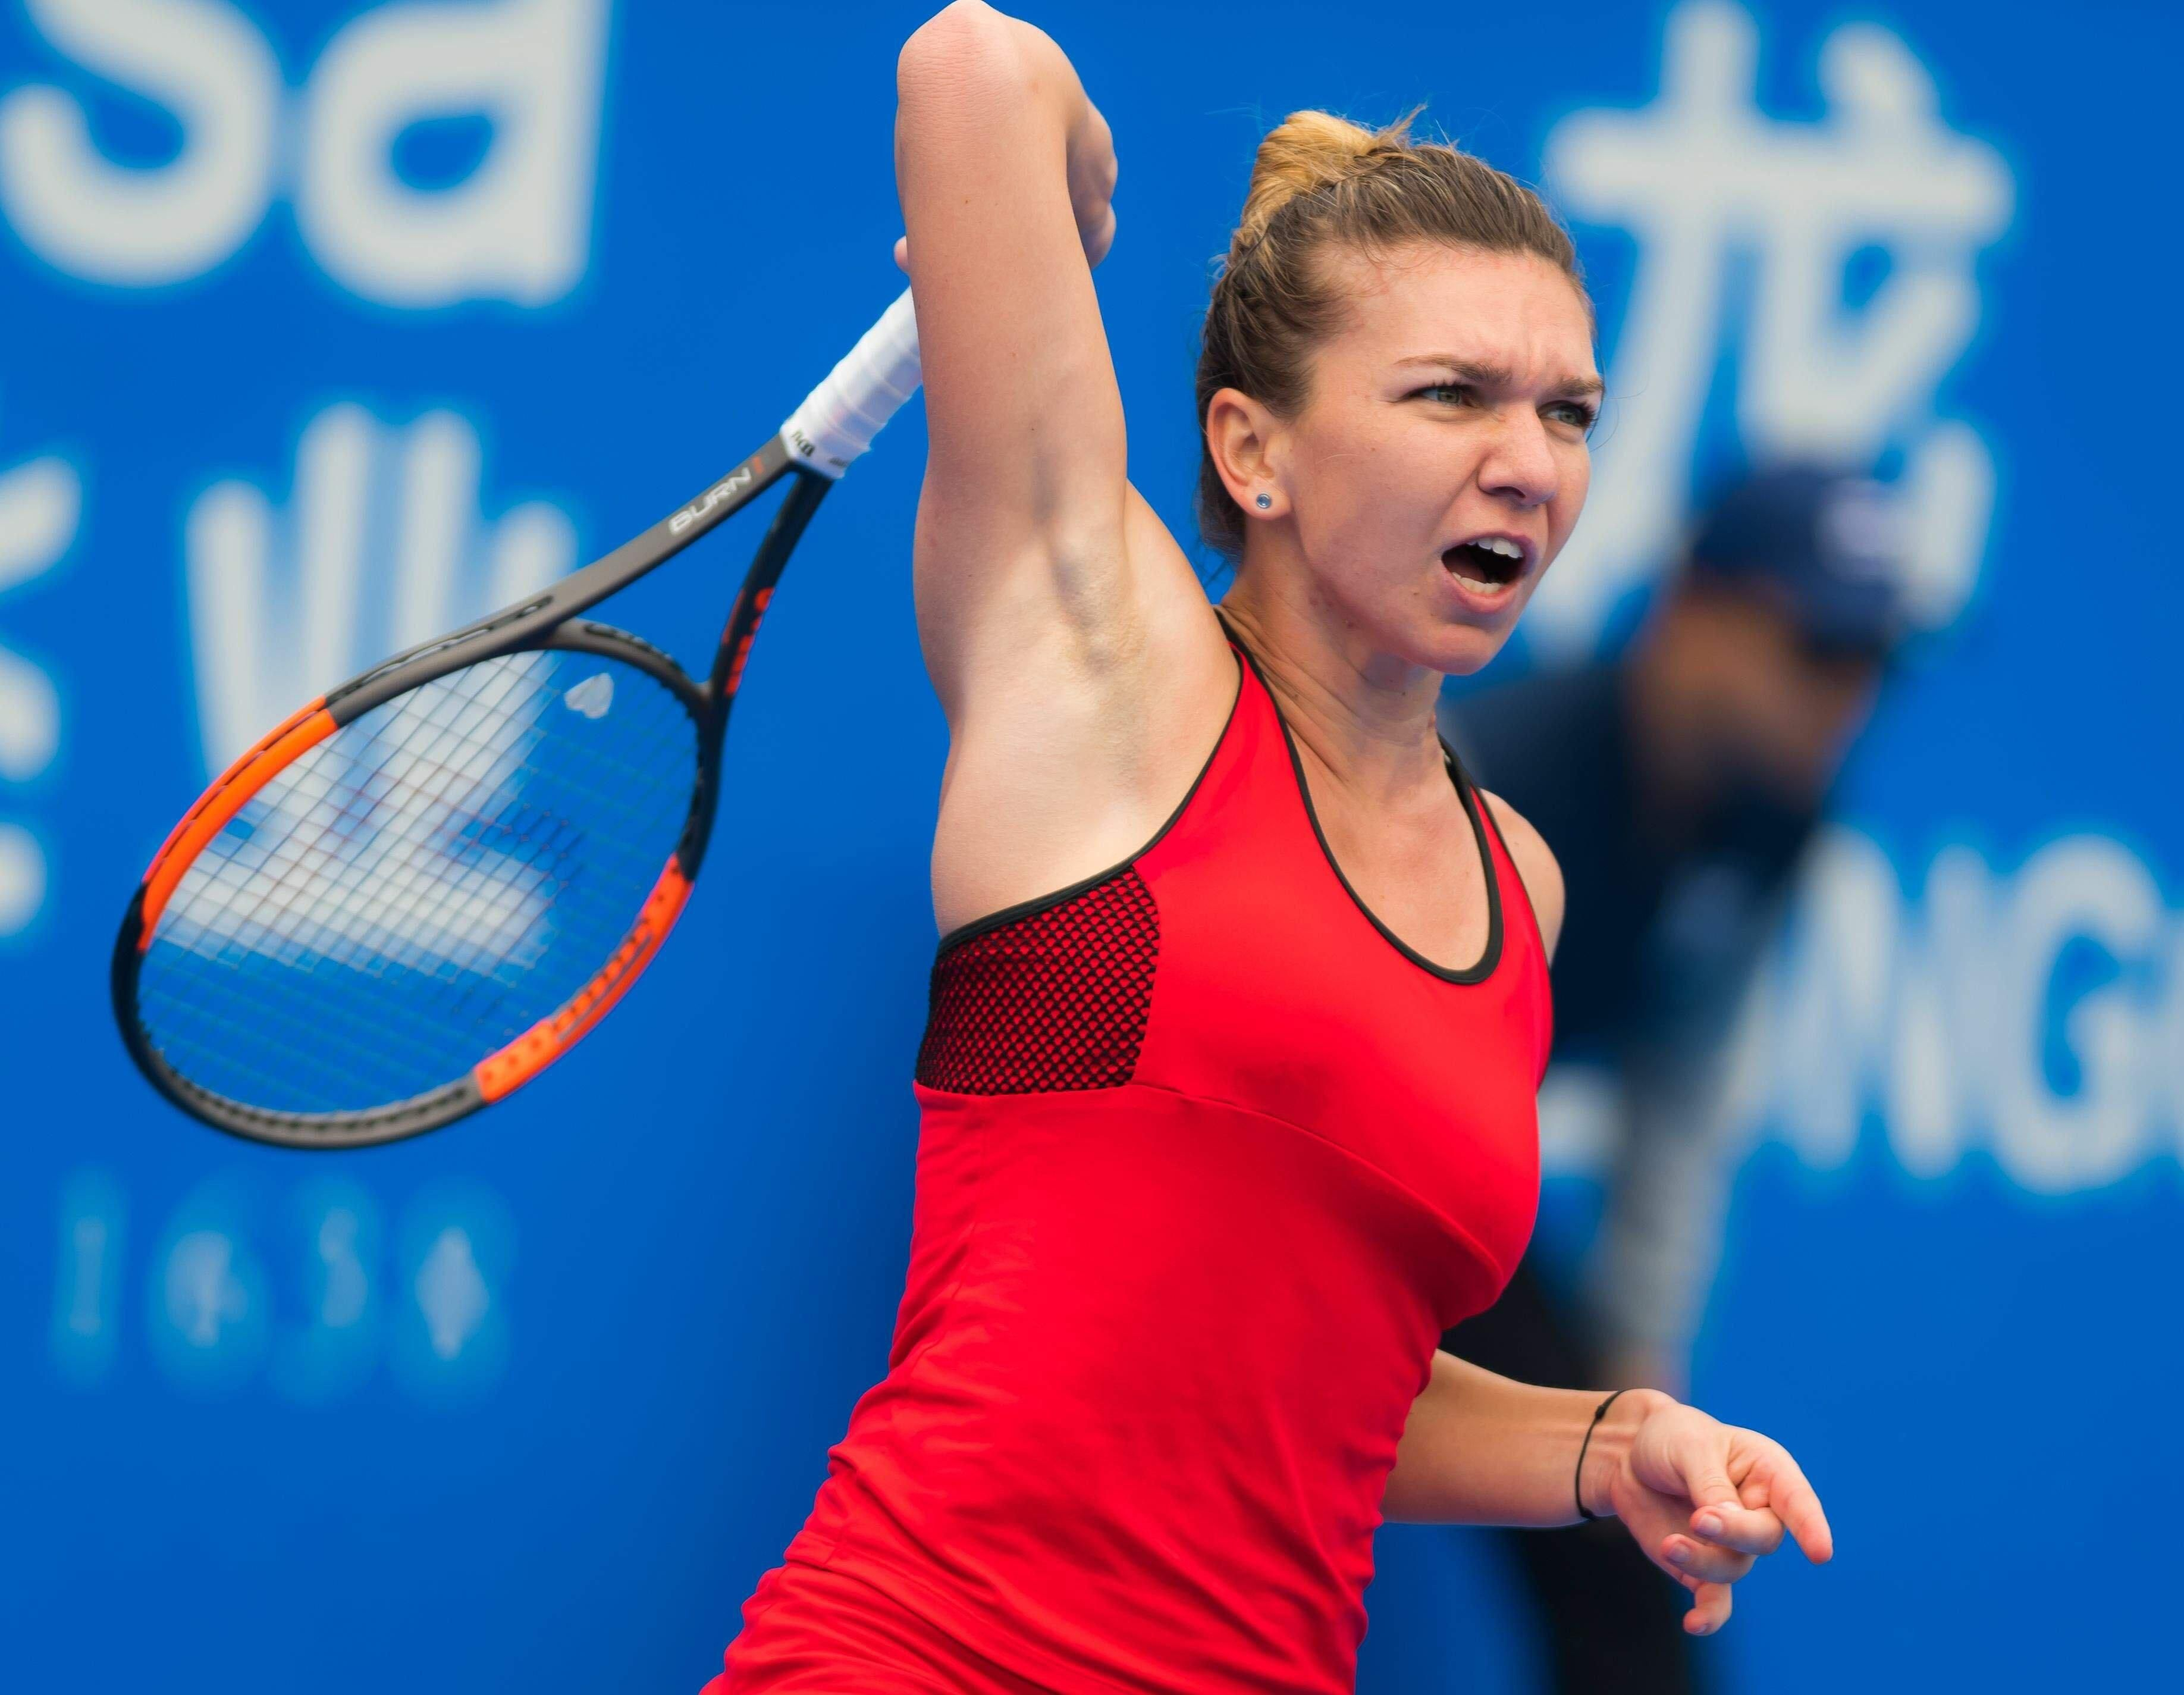 bra Snapchat Simona Halep naked photo 2017